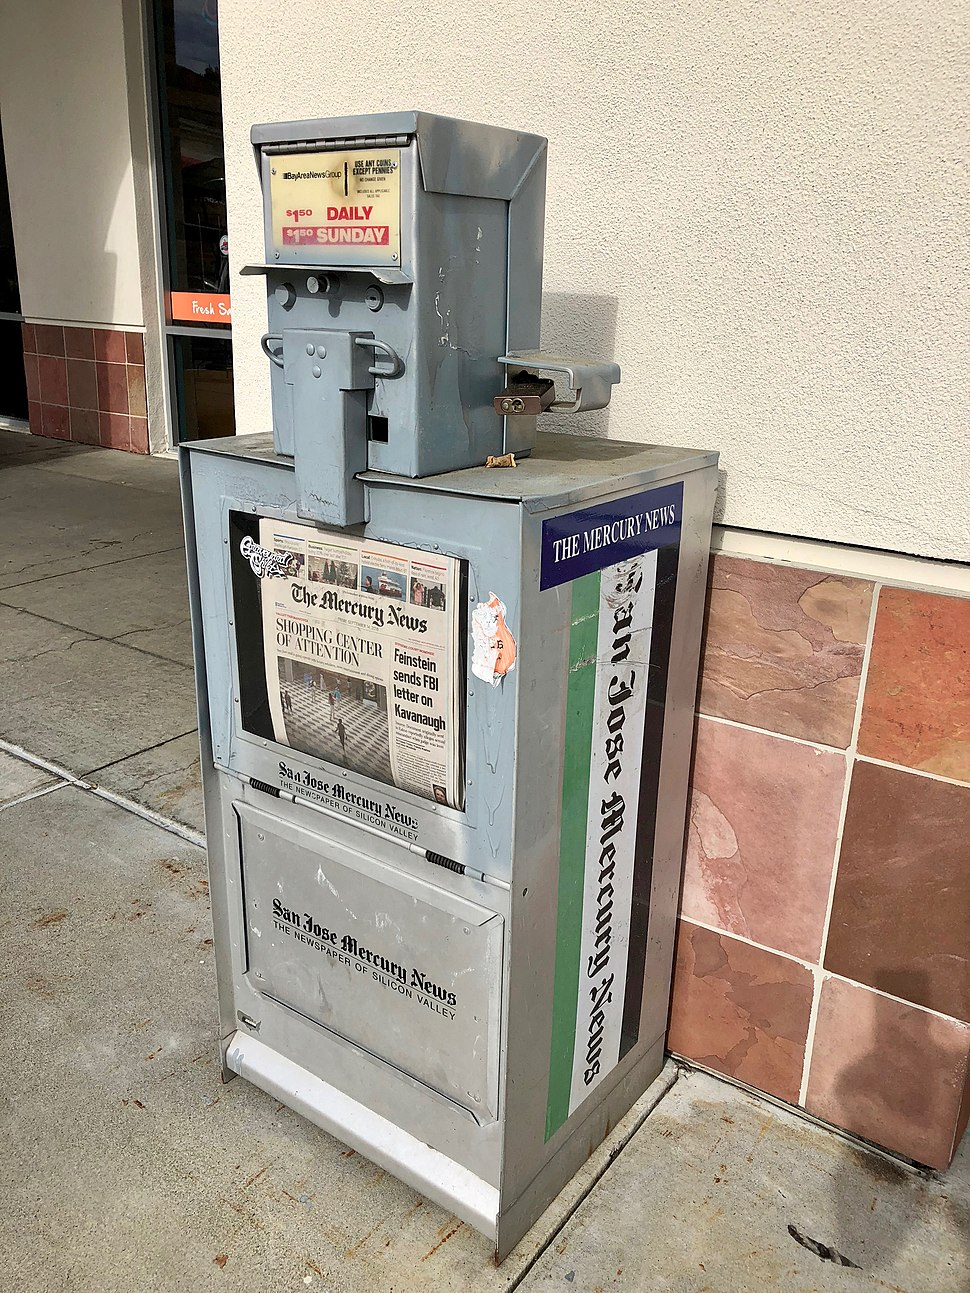 San Jose Mercury News vending machine